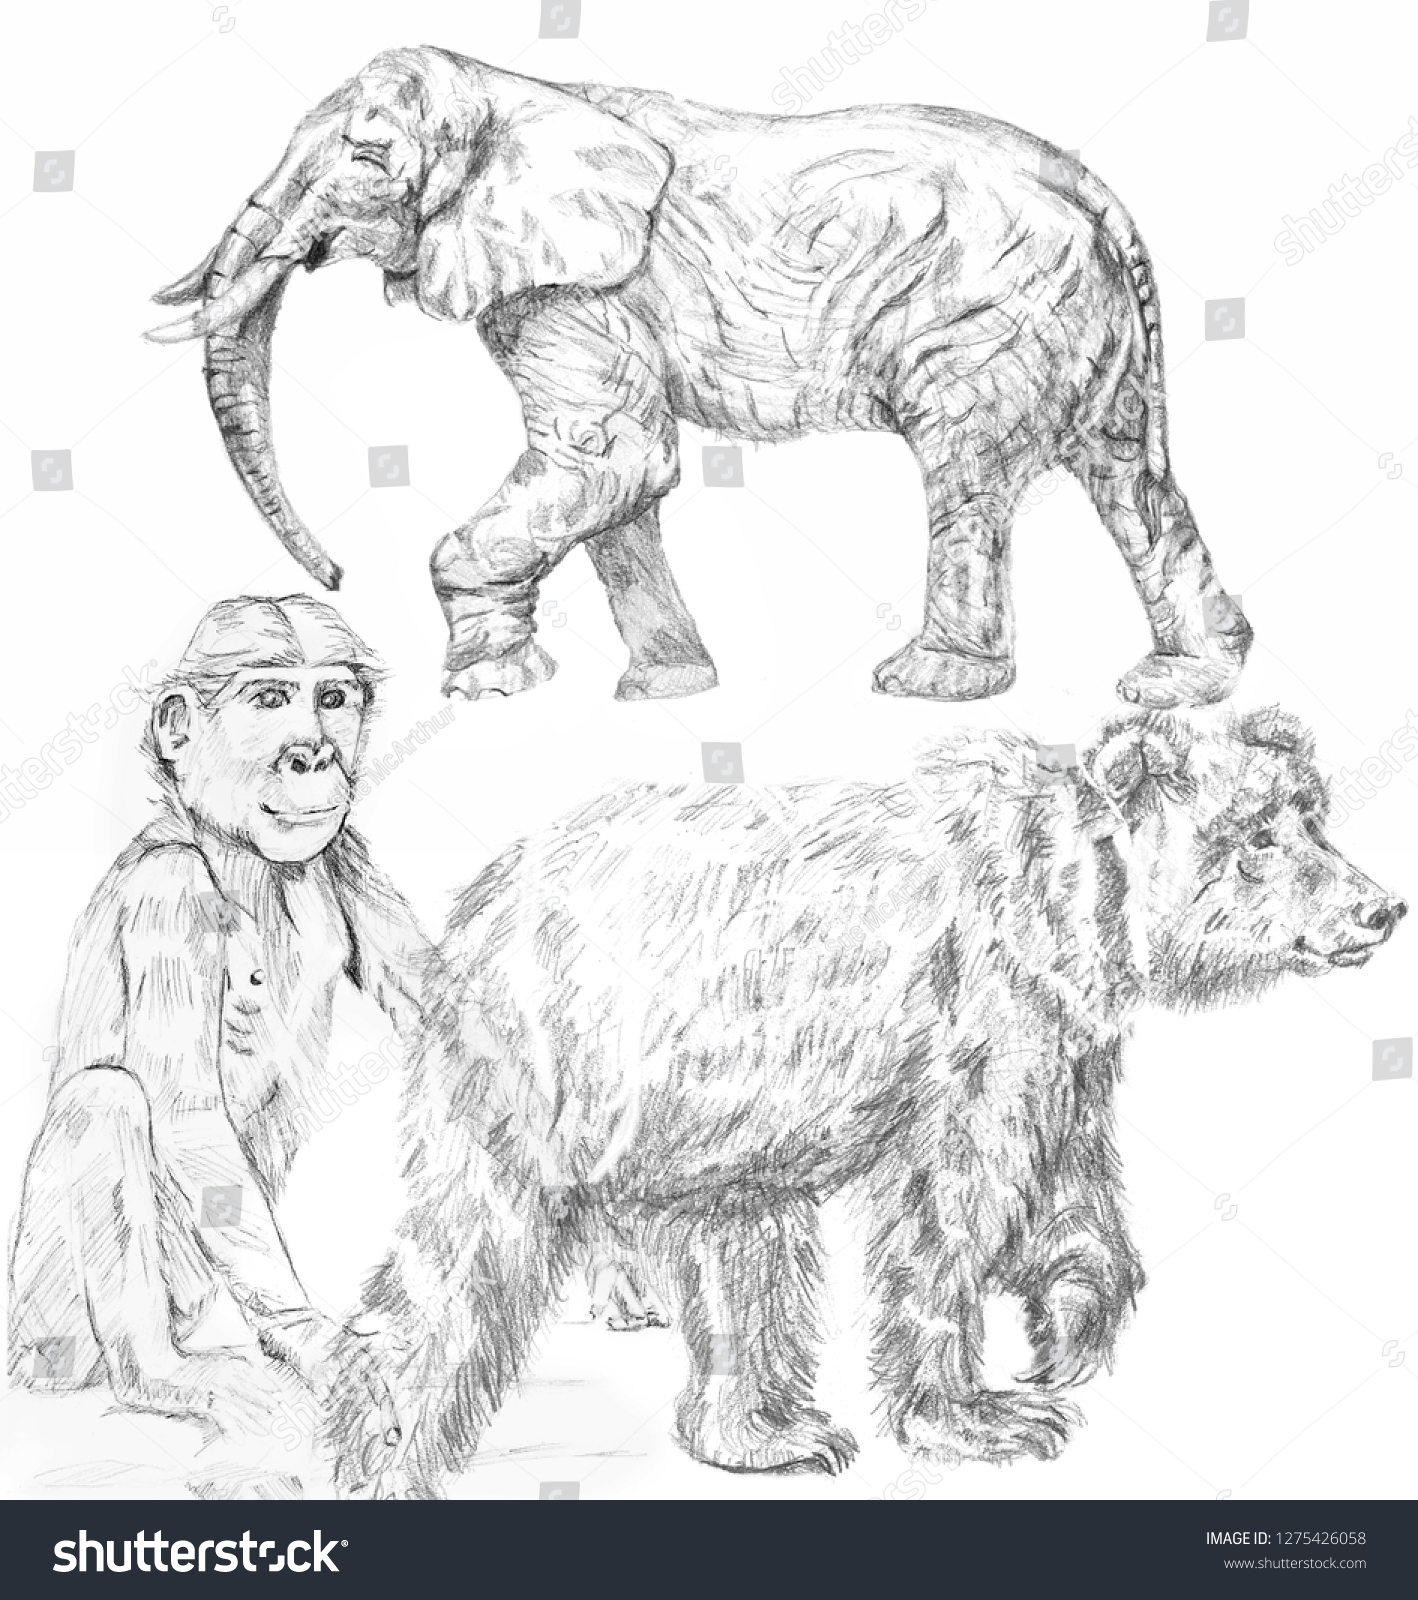 Zoo animals pencil drawings drawnancientcutefarmengravingetching